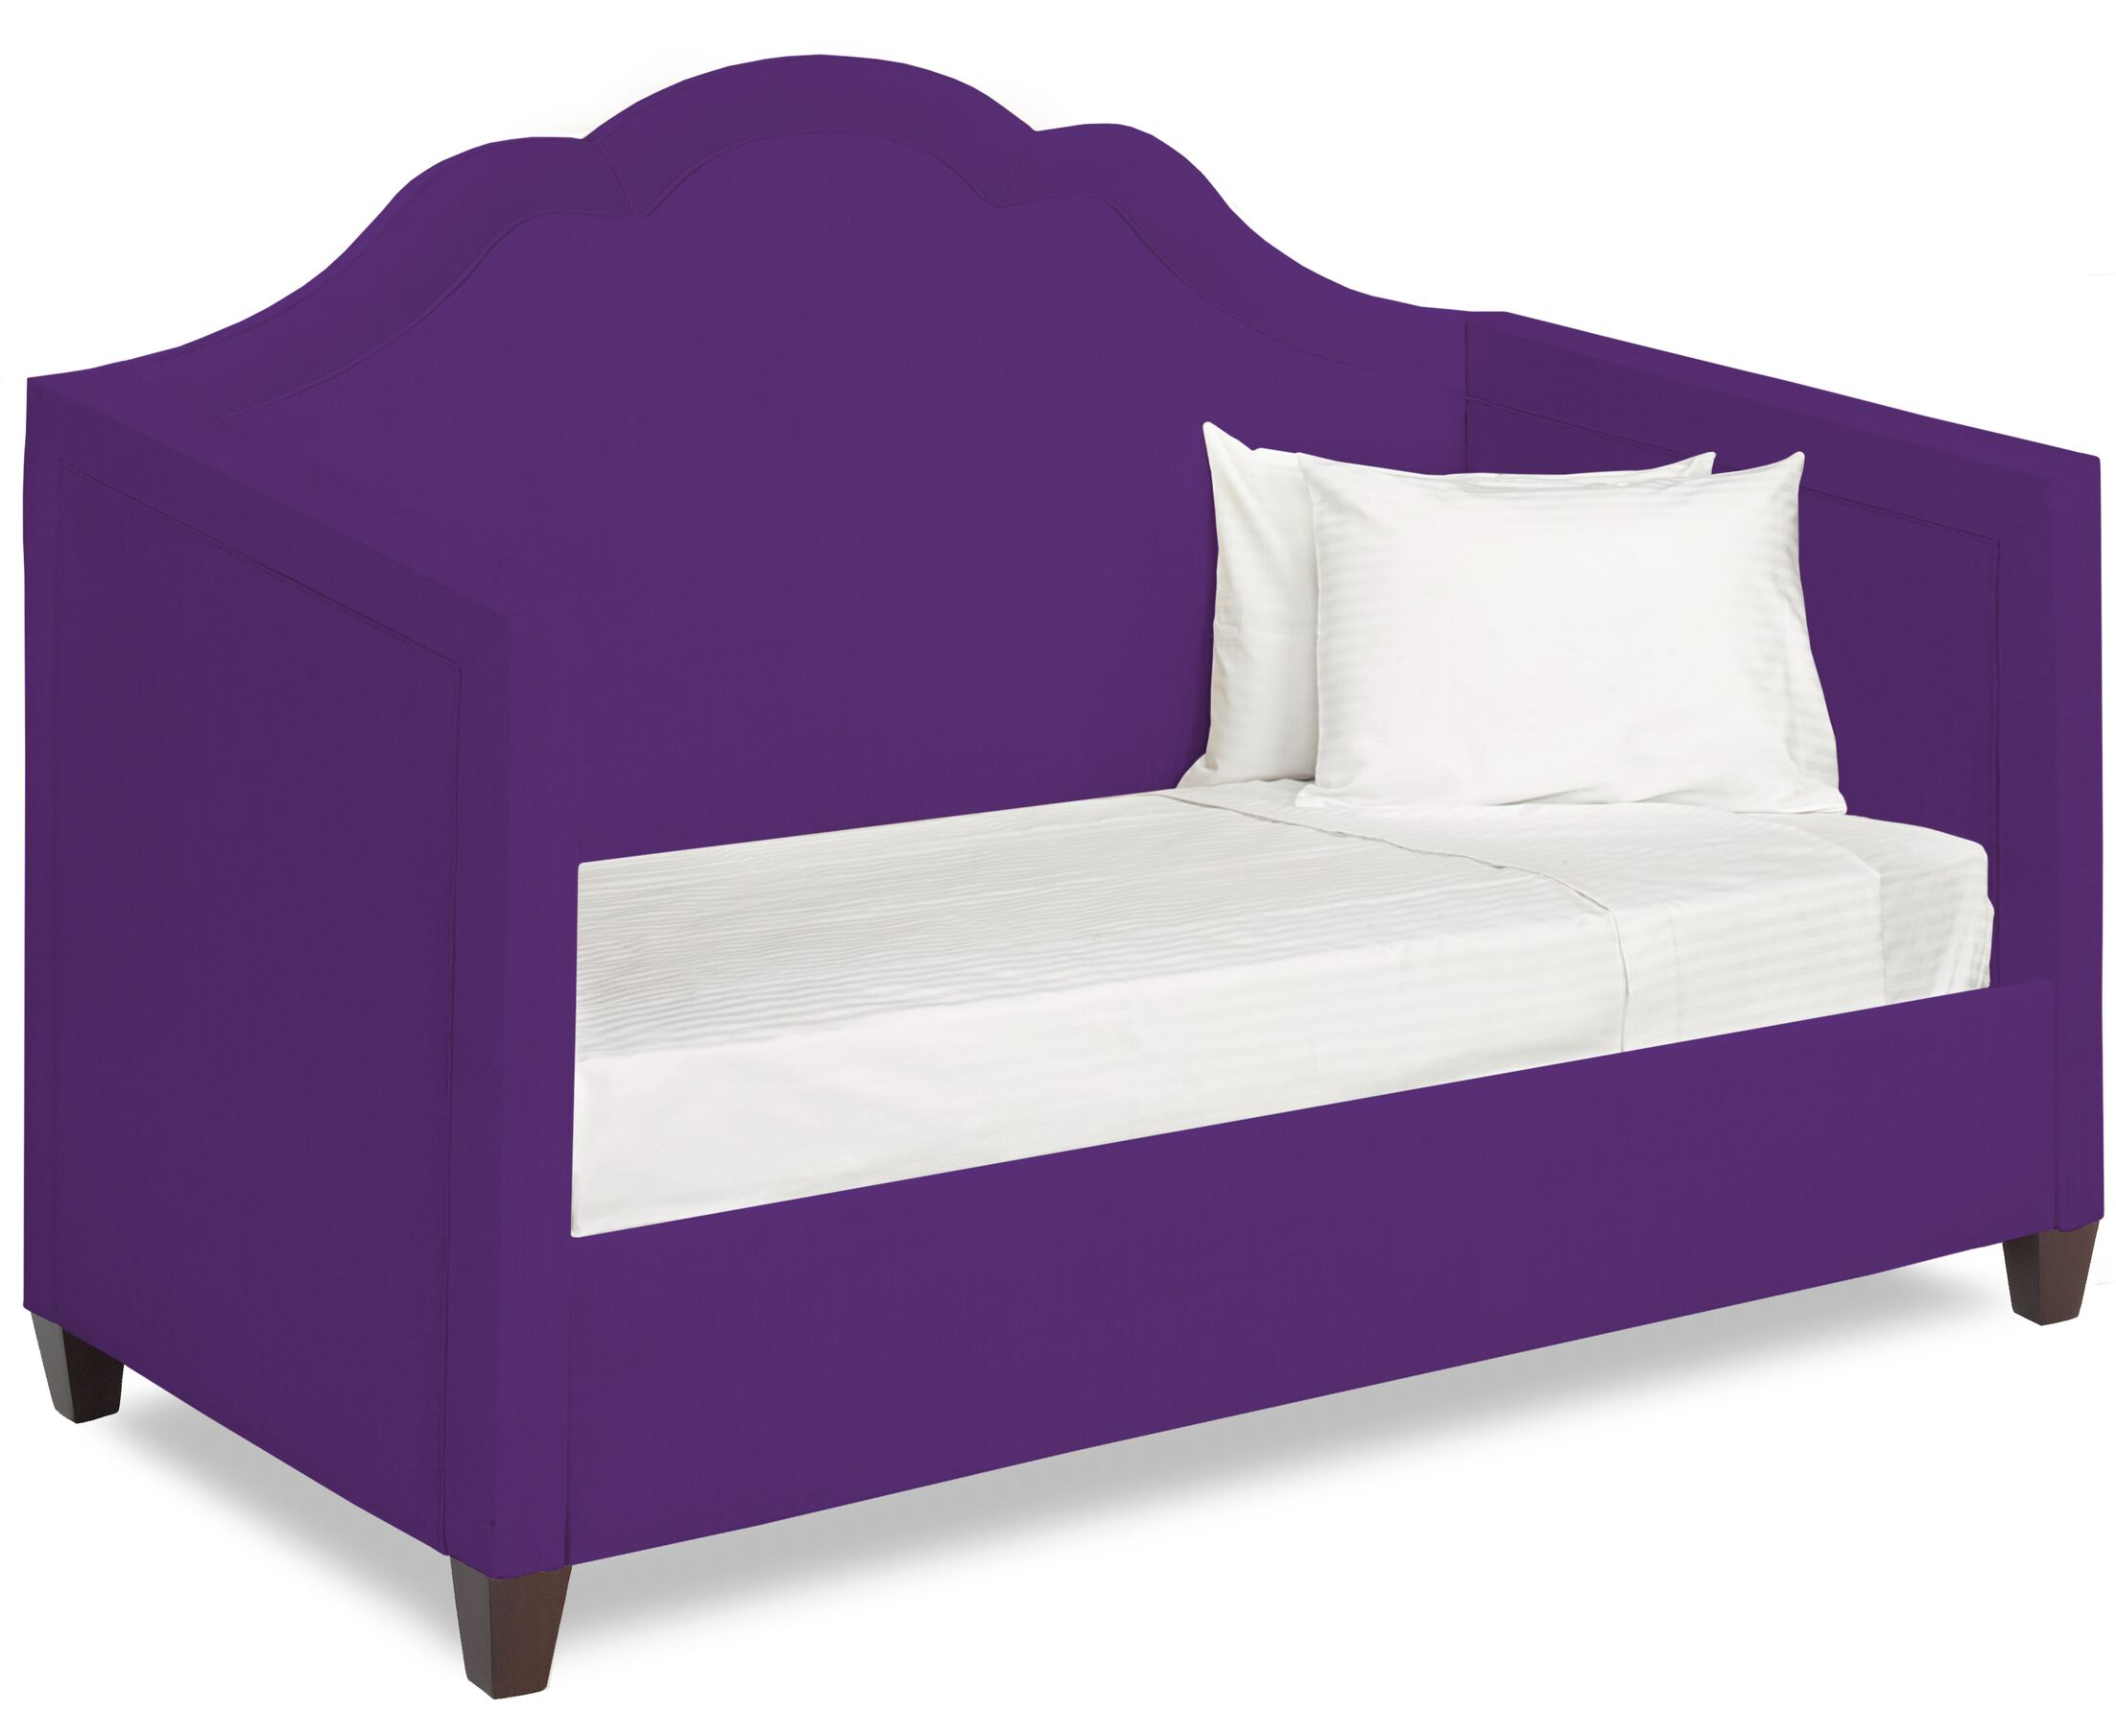 Dreamtime Daybed with Mattress Size: Twin XL, Color: Eggplant